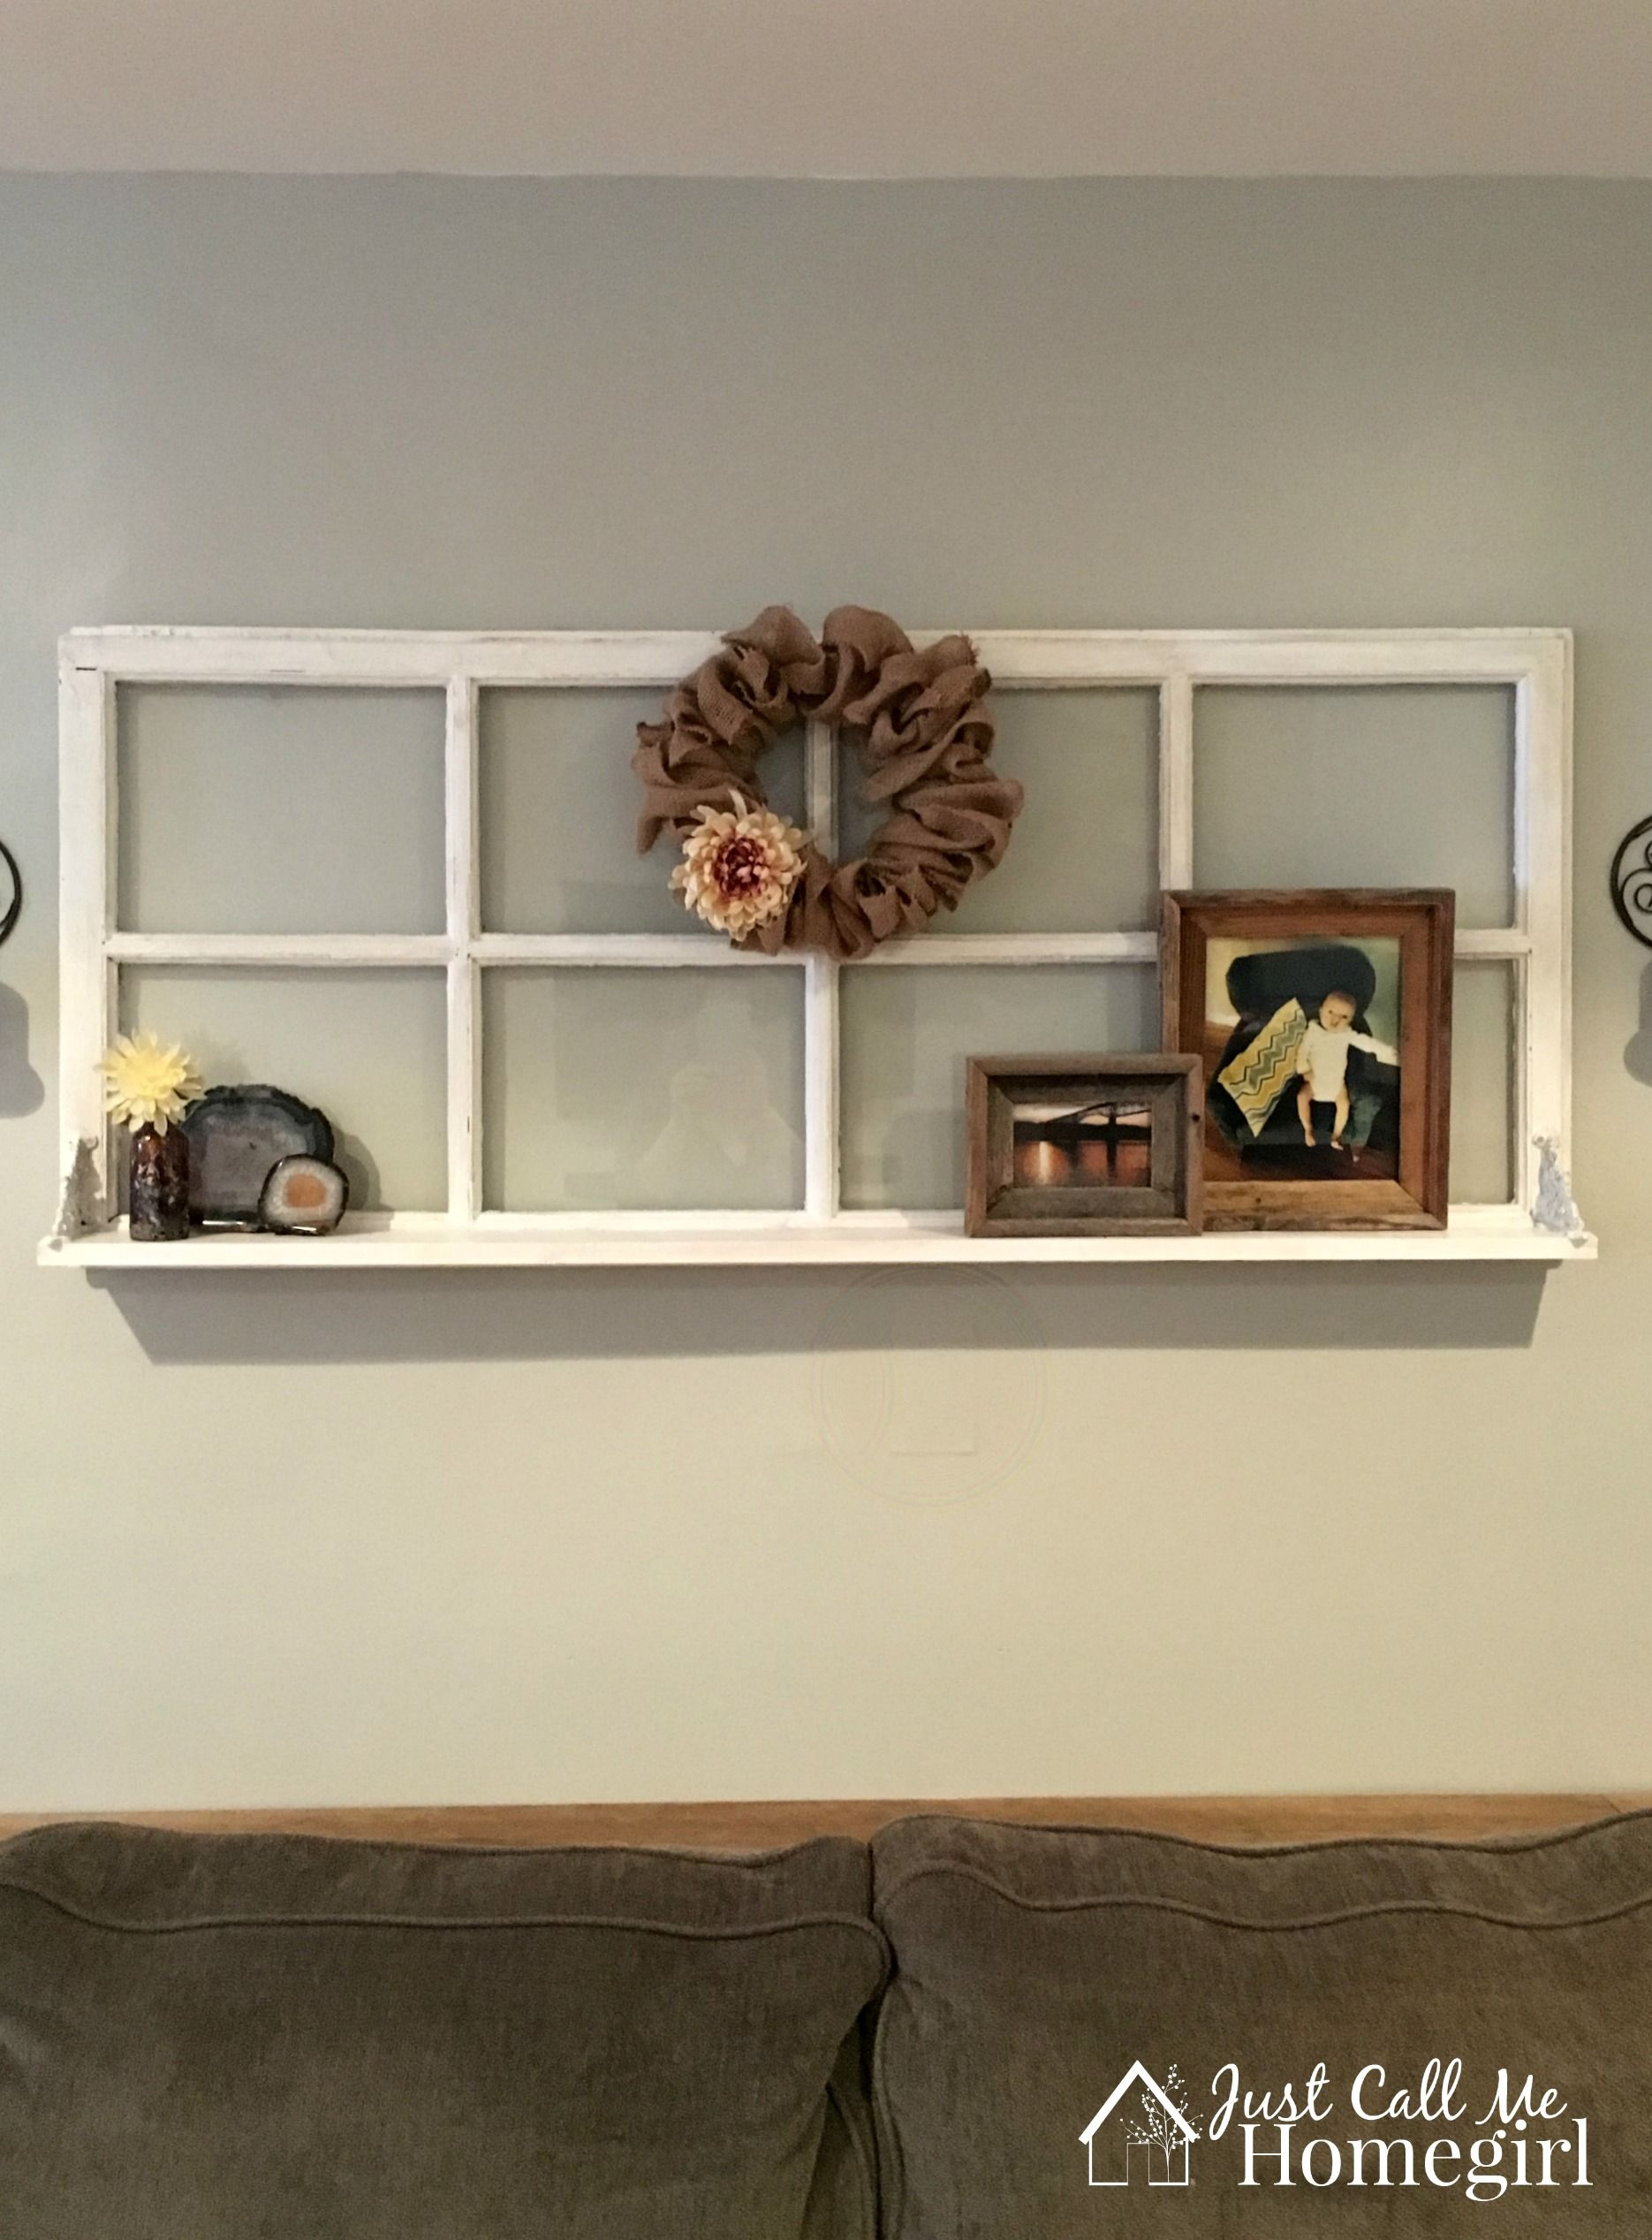 Adding A Shelf To An Old Window Old Window Decor Home Decor